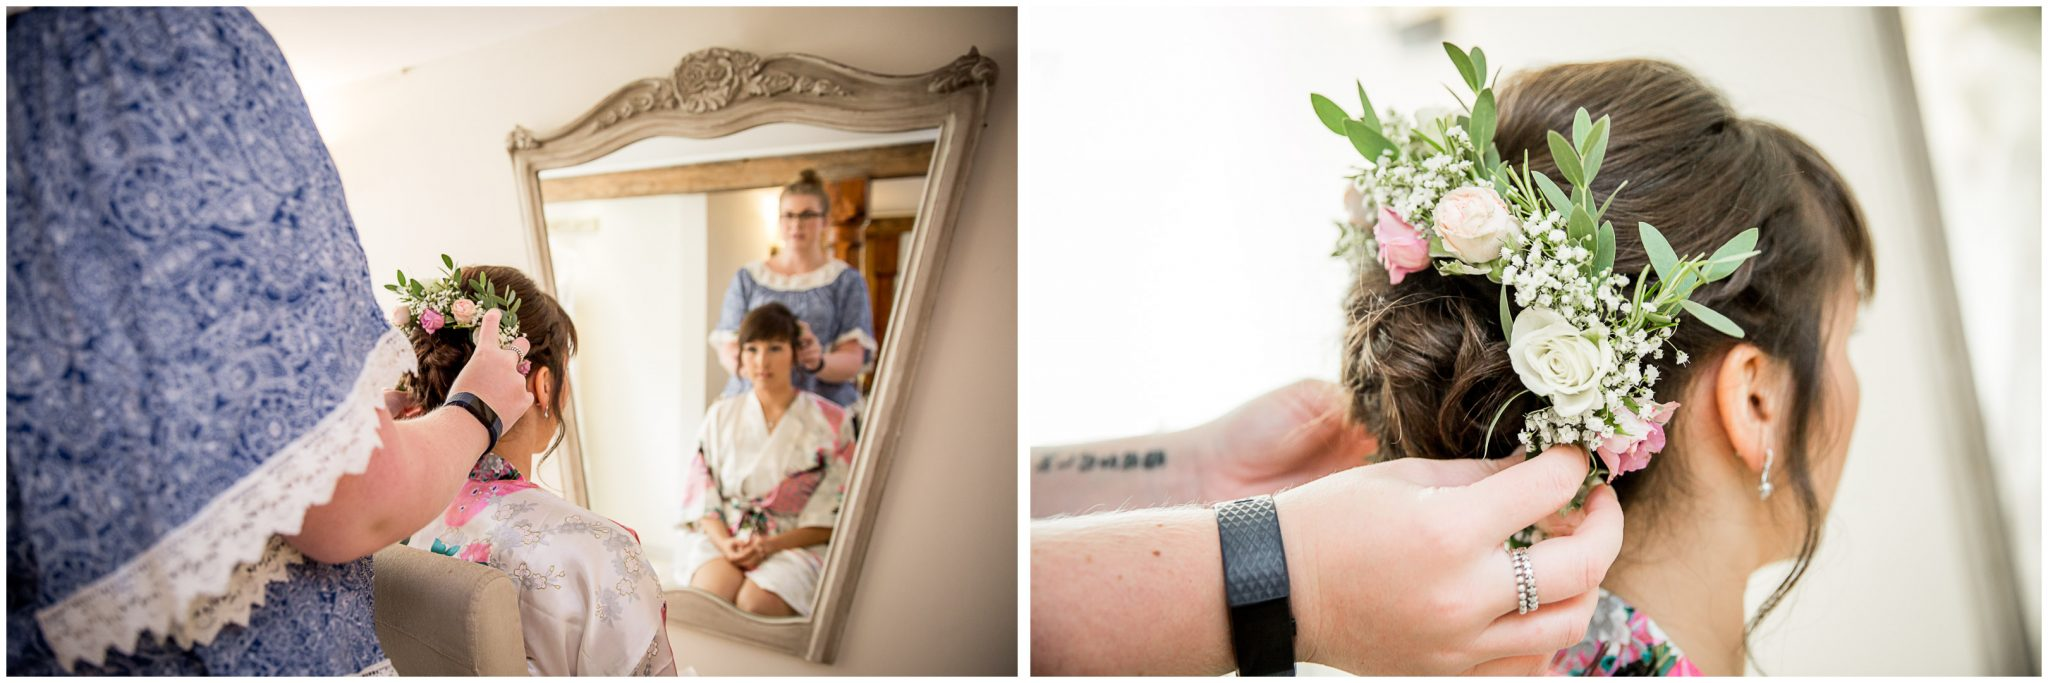 Sopley Mill wedding photography flowers in bride's hair